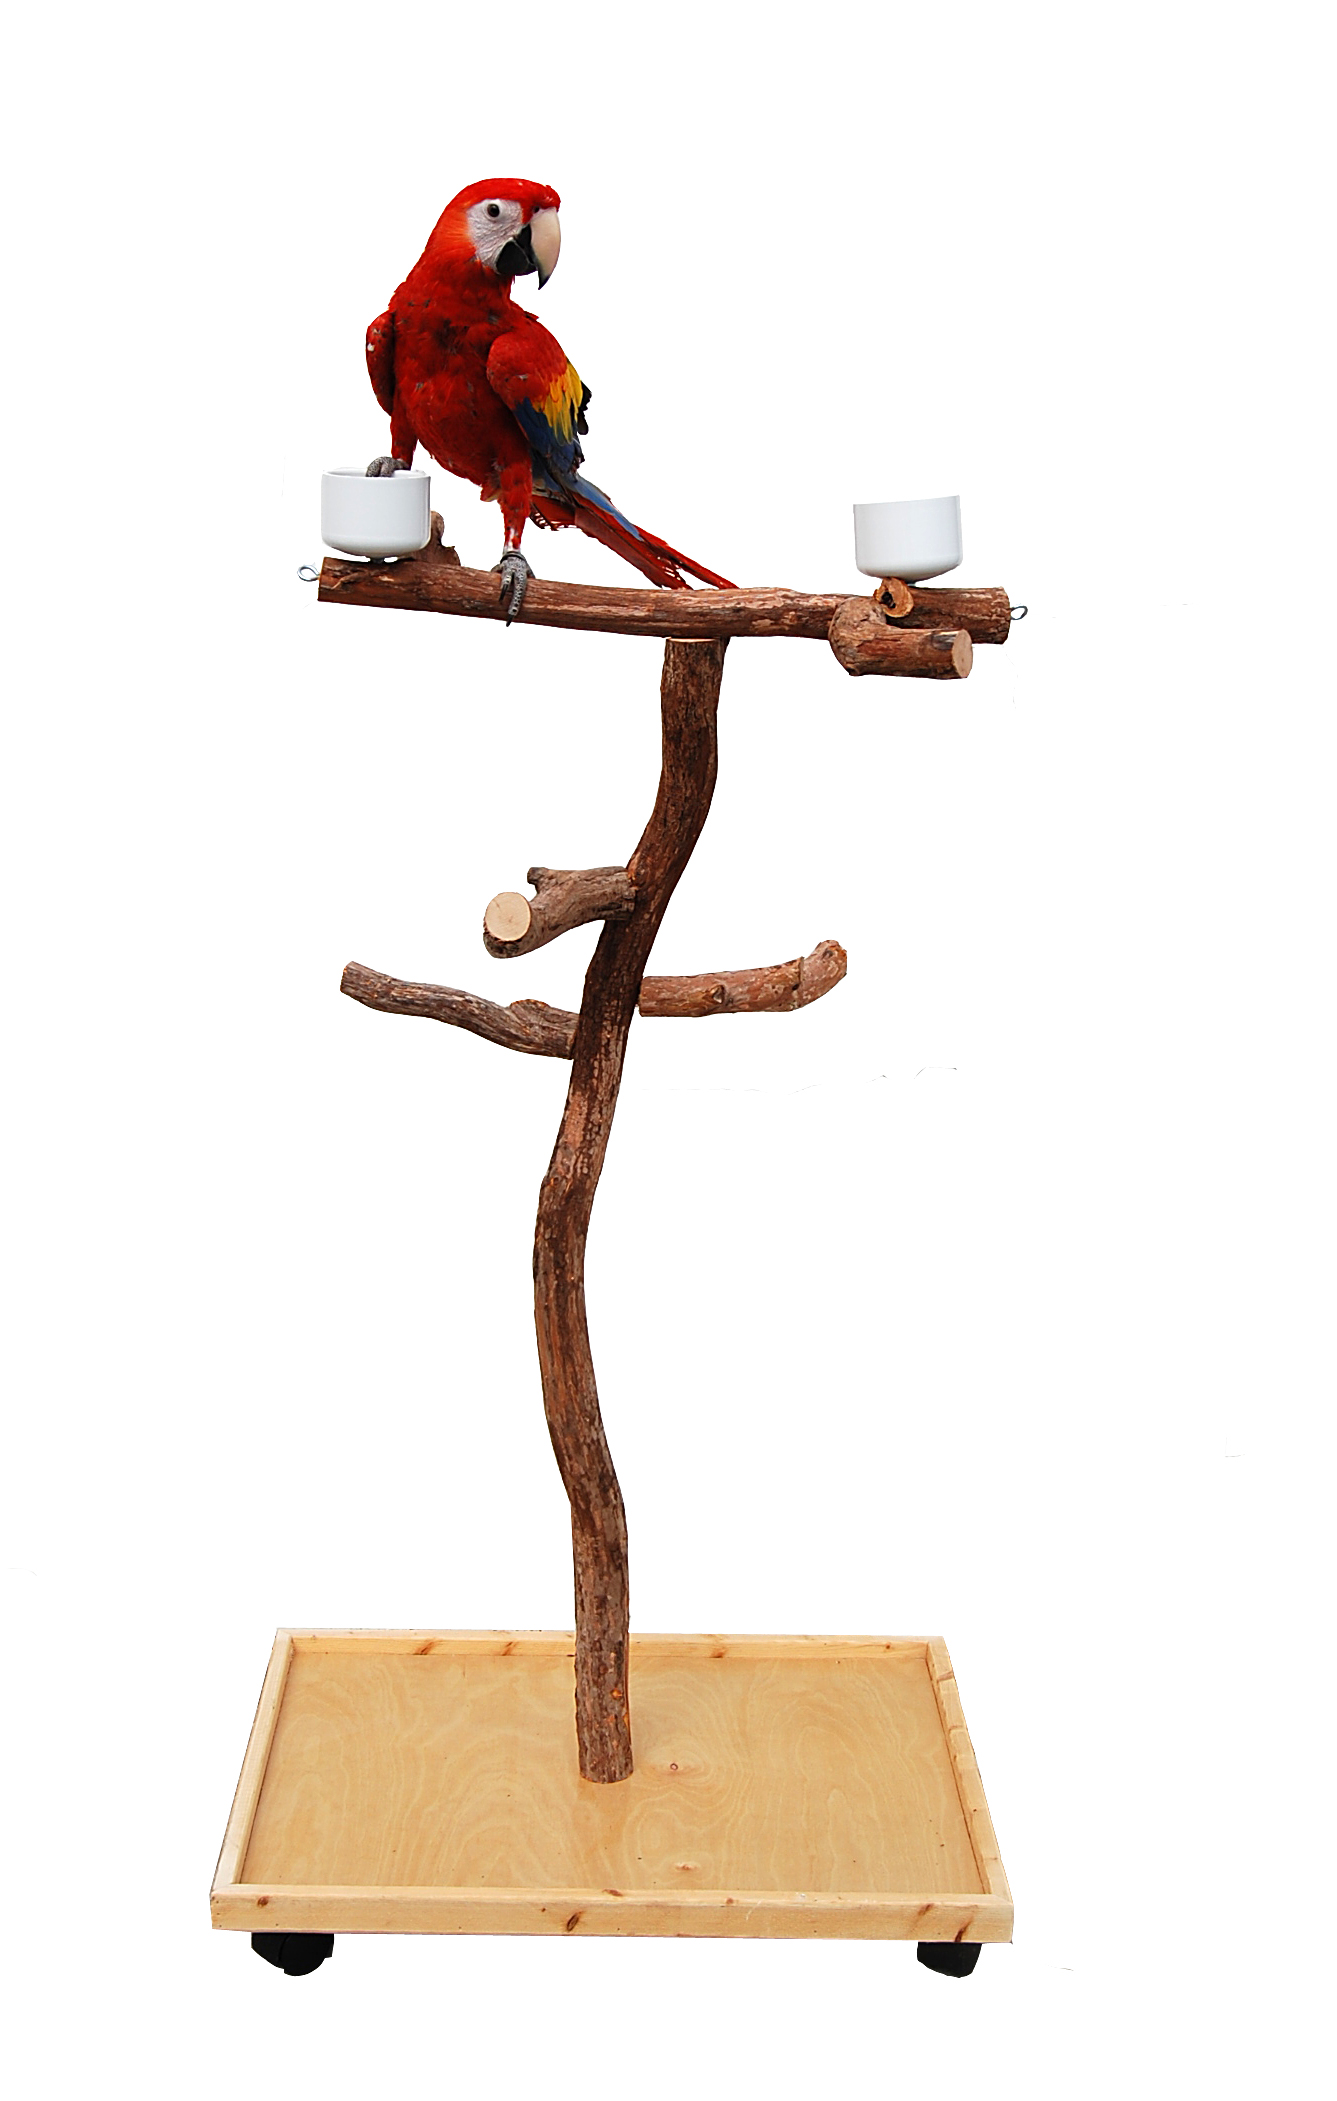 a dragonwood play stand for large parrots